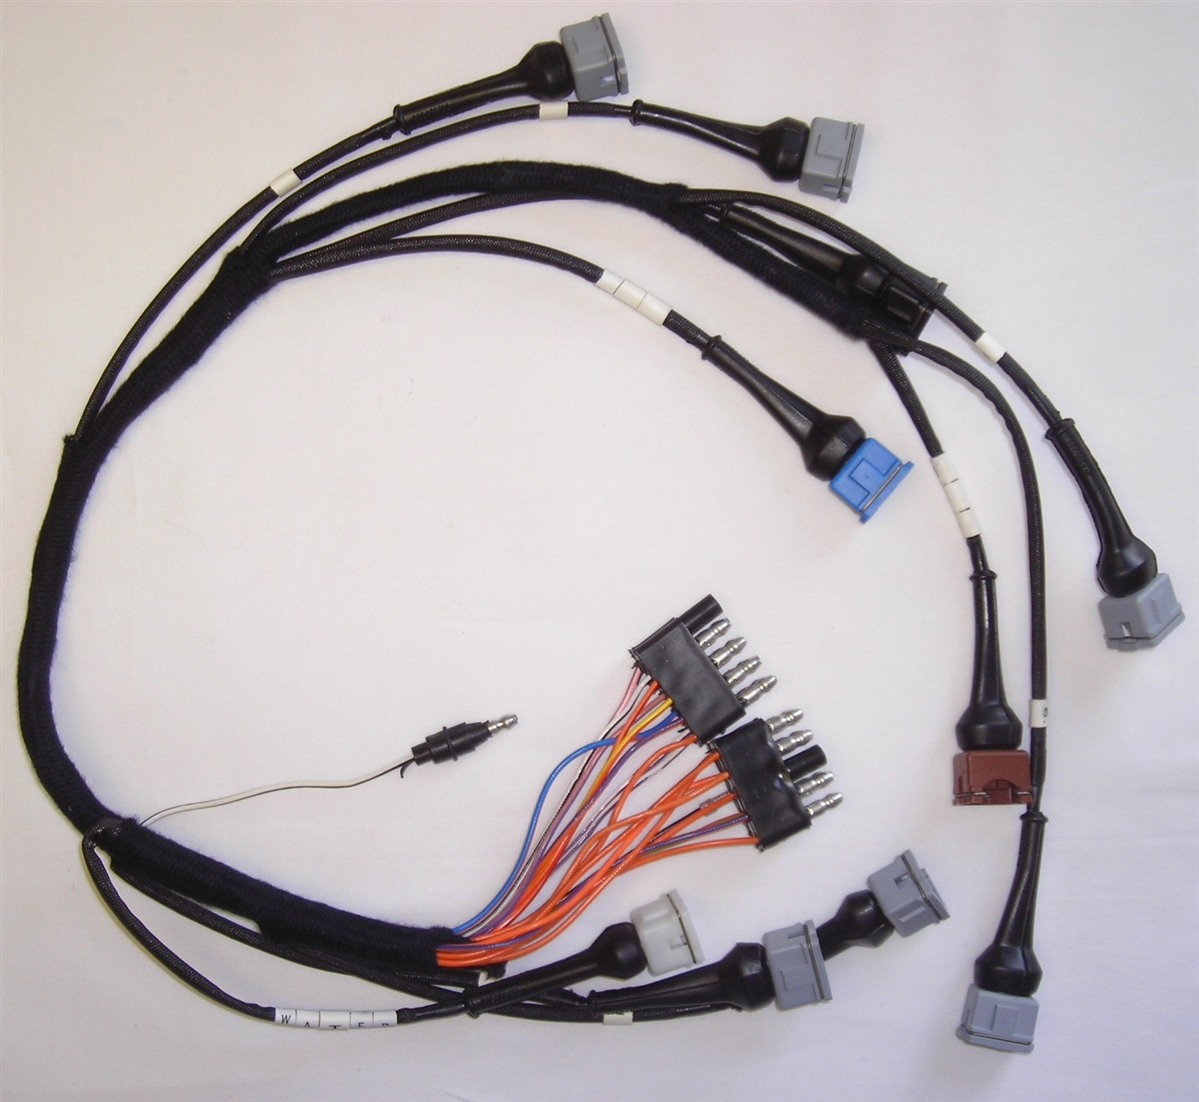 XJ6311 2?1403006000 jaguar series 3 xj6 fuel injection harness jaguar wiring harness at reclaimingppi.co